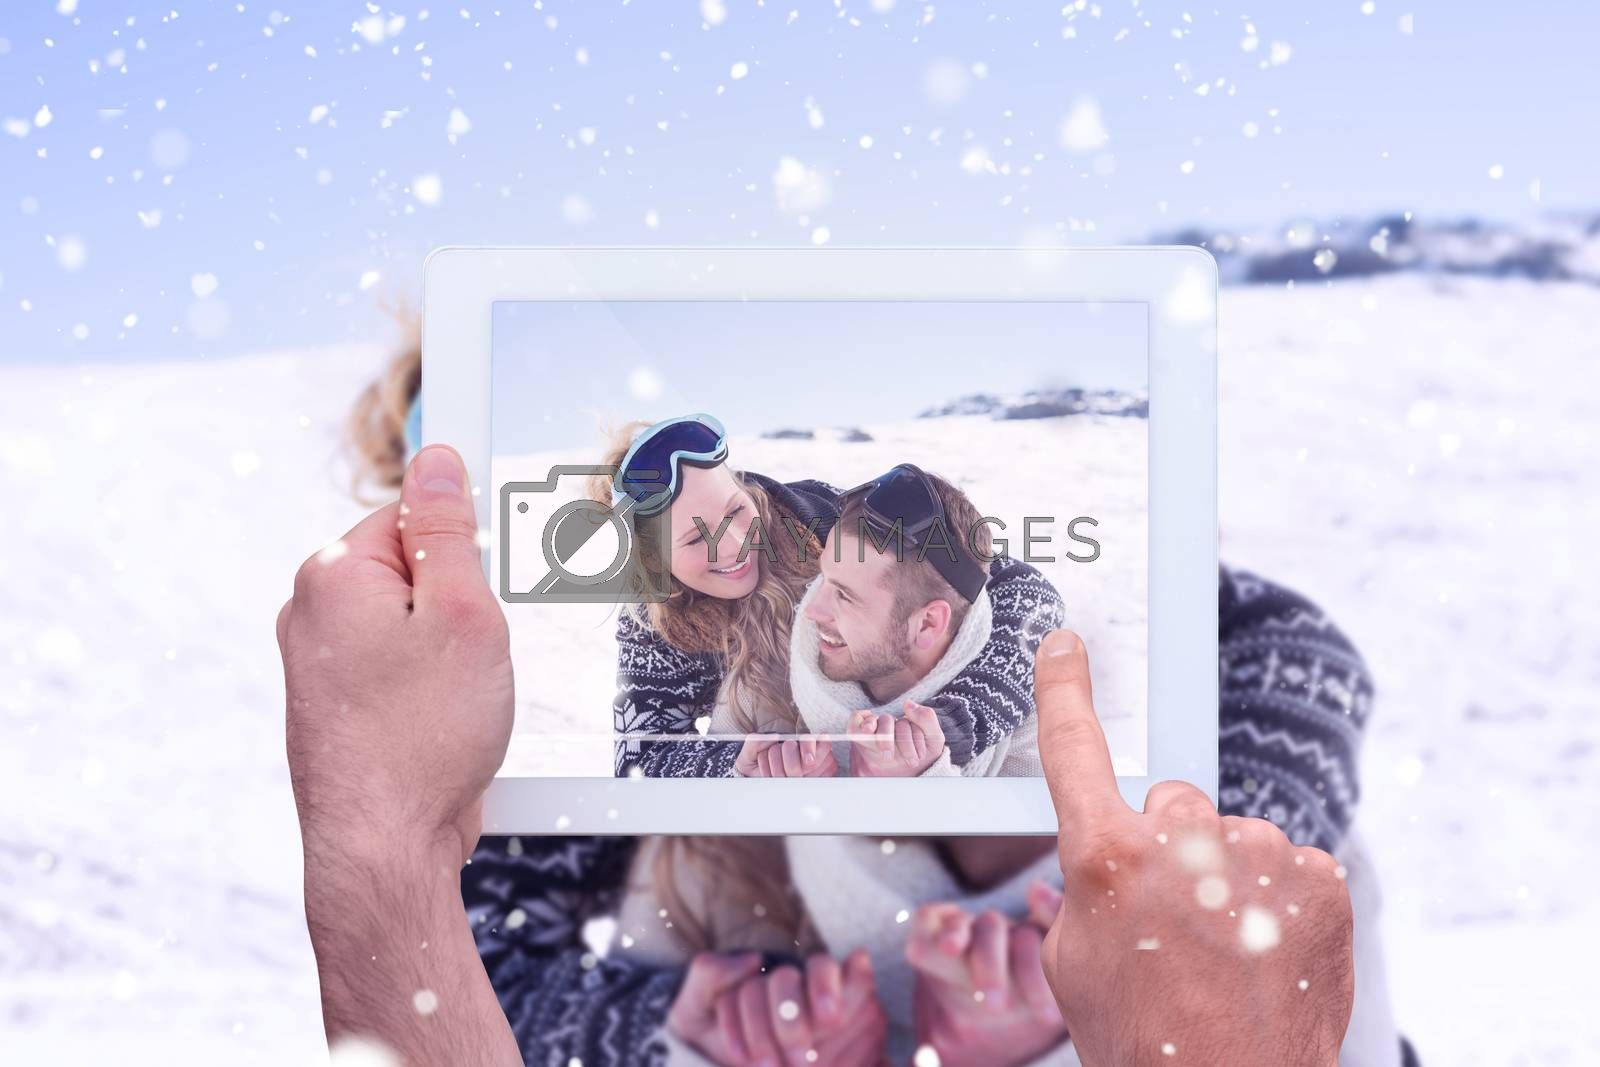 Hand holding tablet pc against close up of a cheerful couple with ski goggles on snow